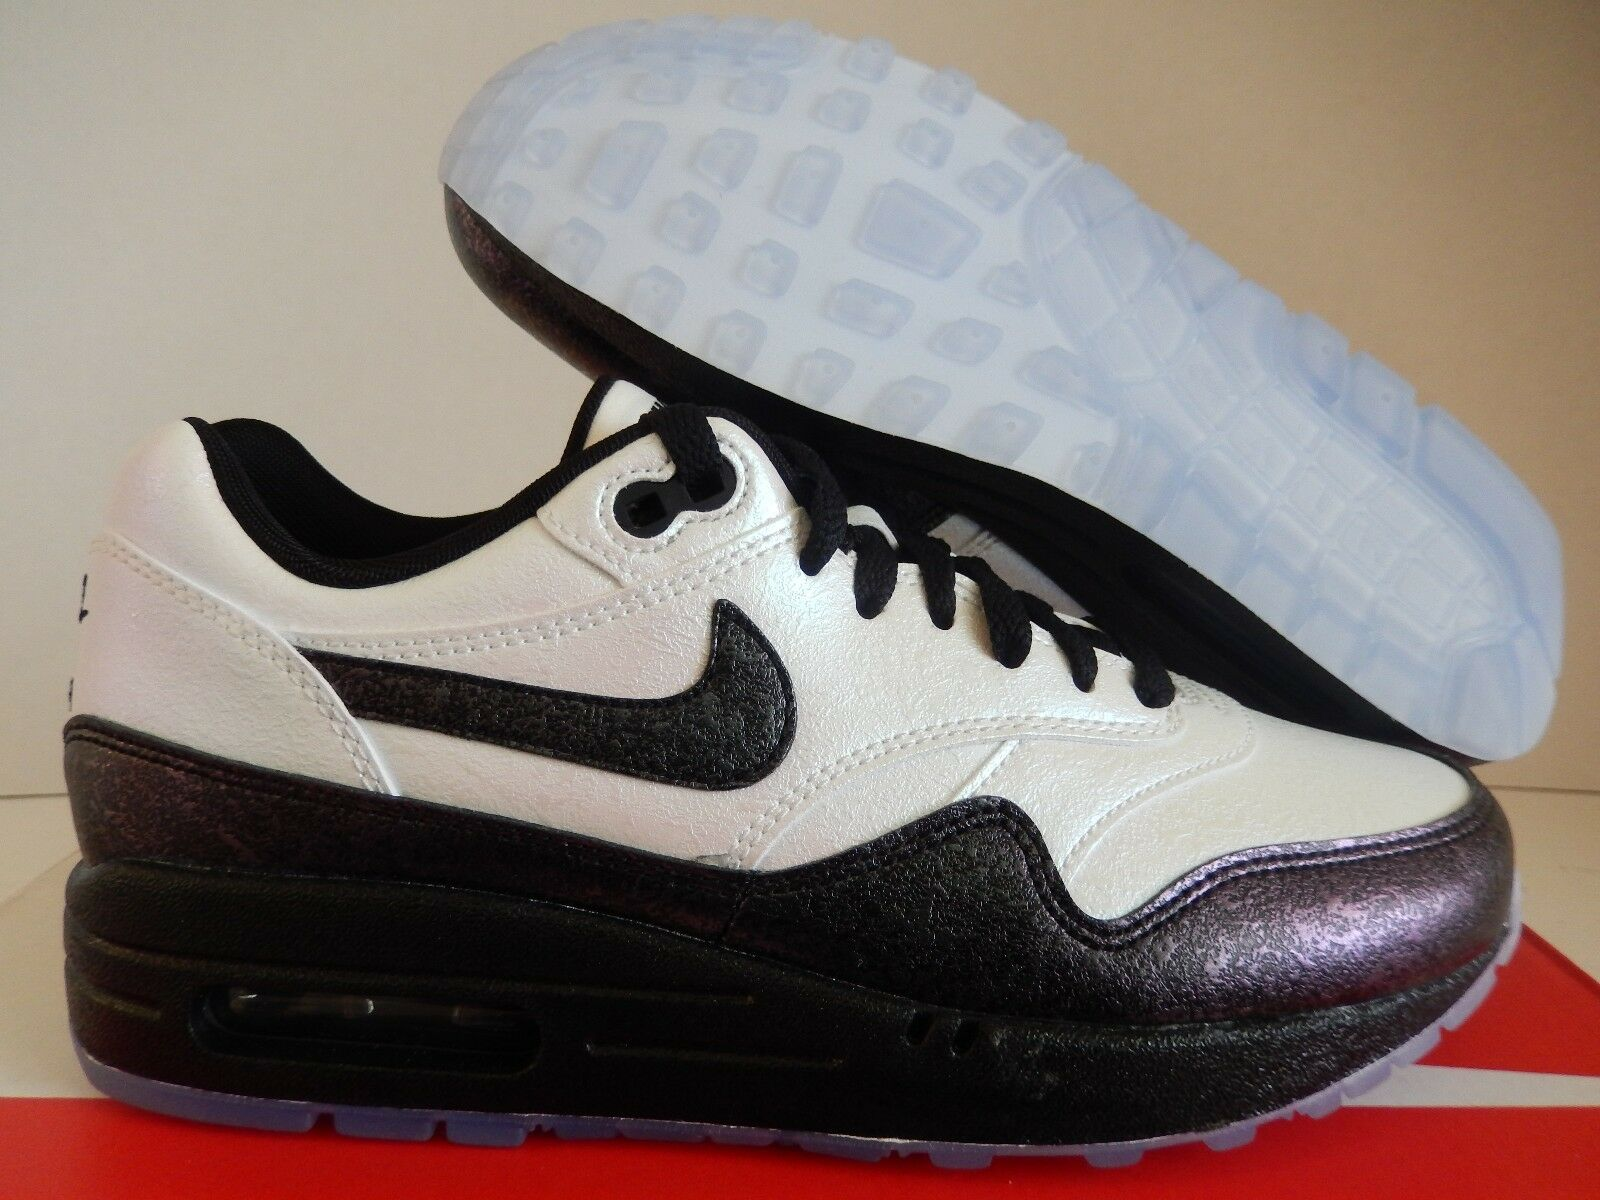 WMNS NIKE AIR MAX 1 iD IRIDESCENT Price reduction The most popular shoes for men and women